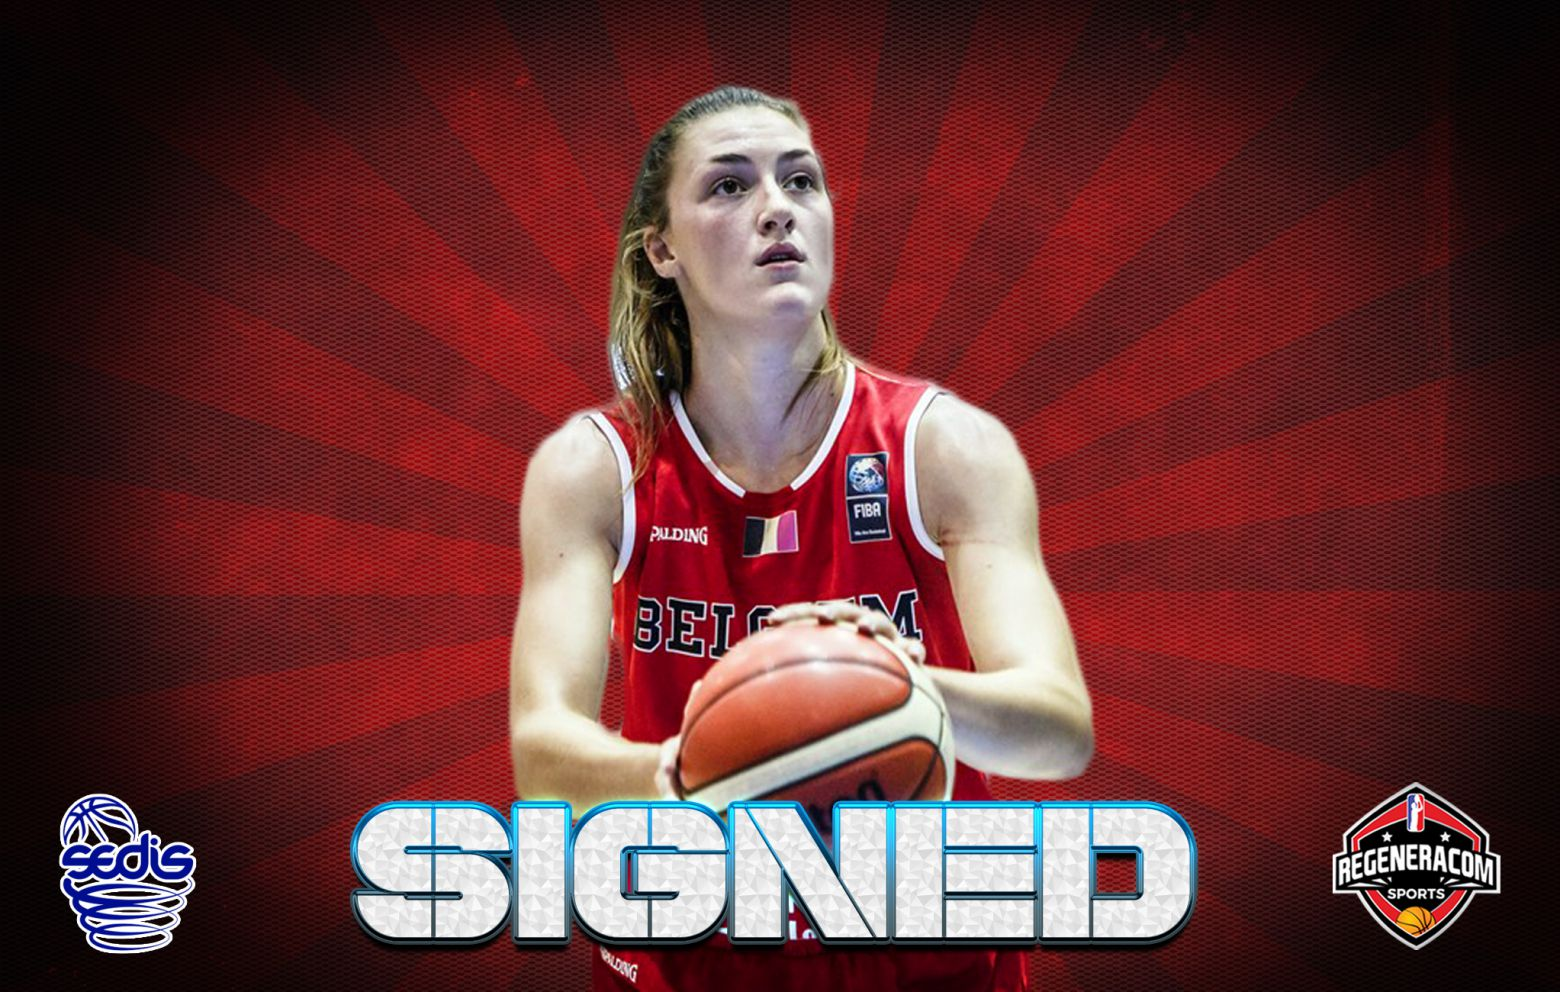 LAURE RESIMONT has signed in Spain with Cadí La Seu